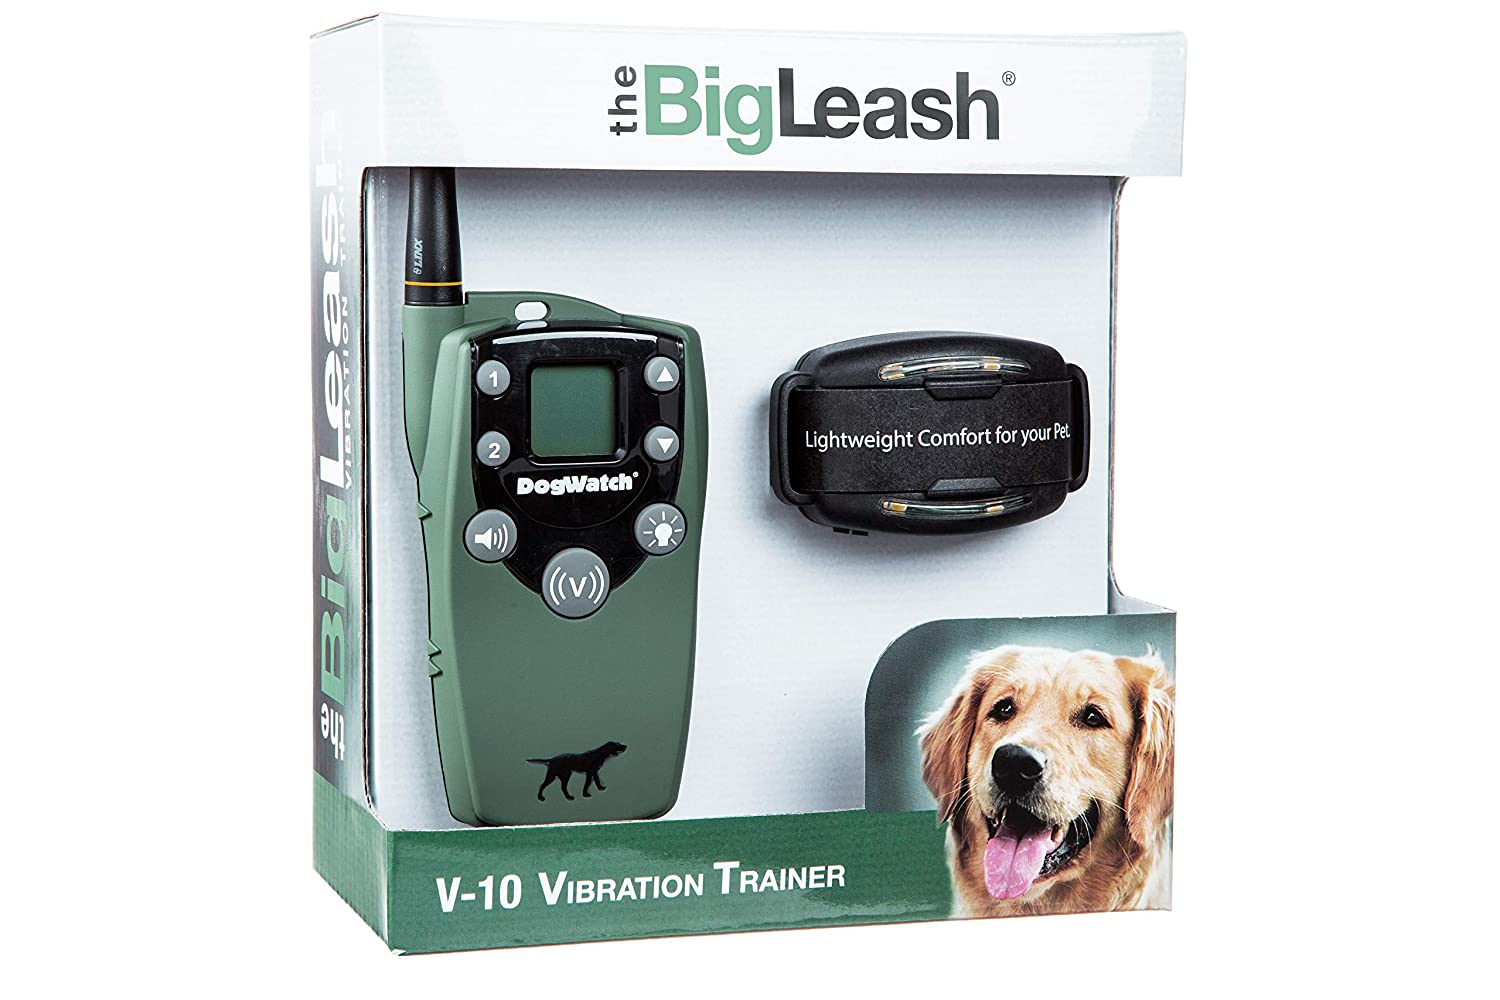 DogWatch BigLeash V-10 Vibration Dog Training Collar Safe and Effective E-Collar with Two-Way Communication up to Mile, 10 Adjustable Vibration Levels Plus an Audible Signal, Waterproof, Recharge